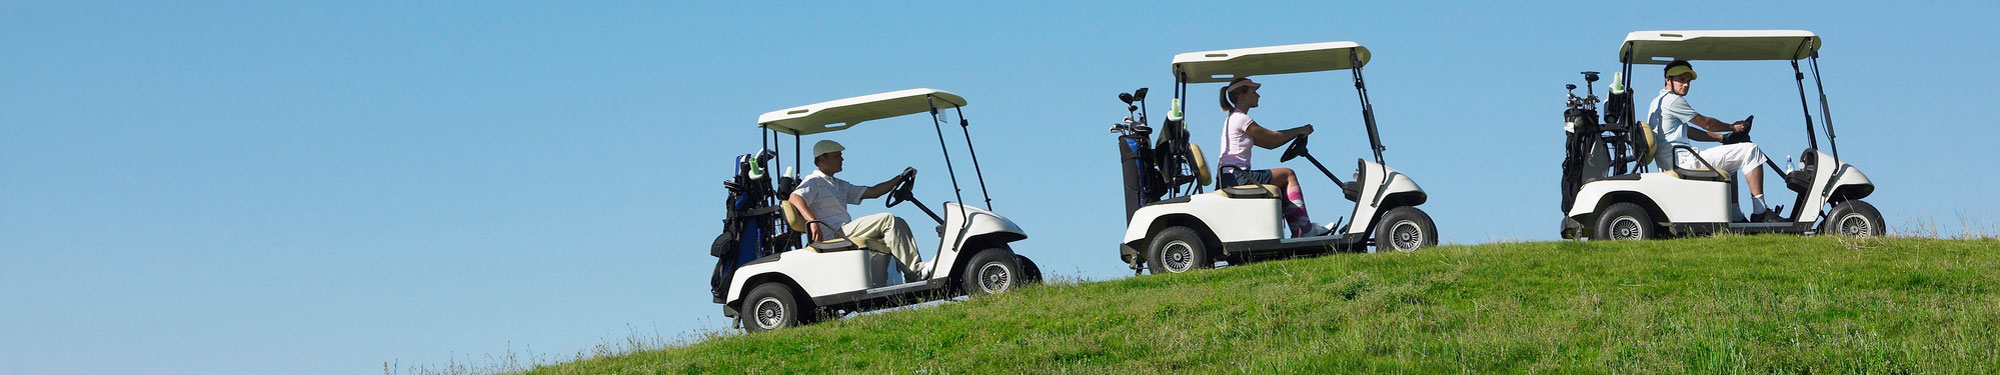 Golf Cart Shipping |Moving |Snowbirds |Online Buyers |Corporate Relos